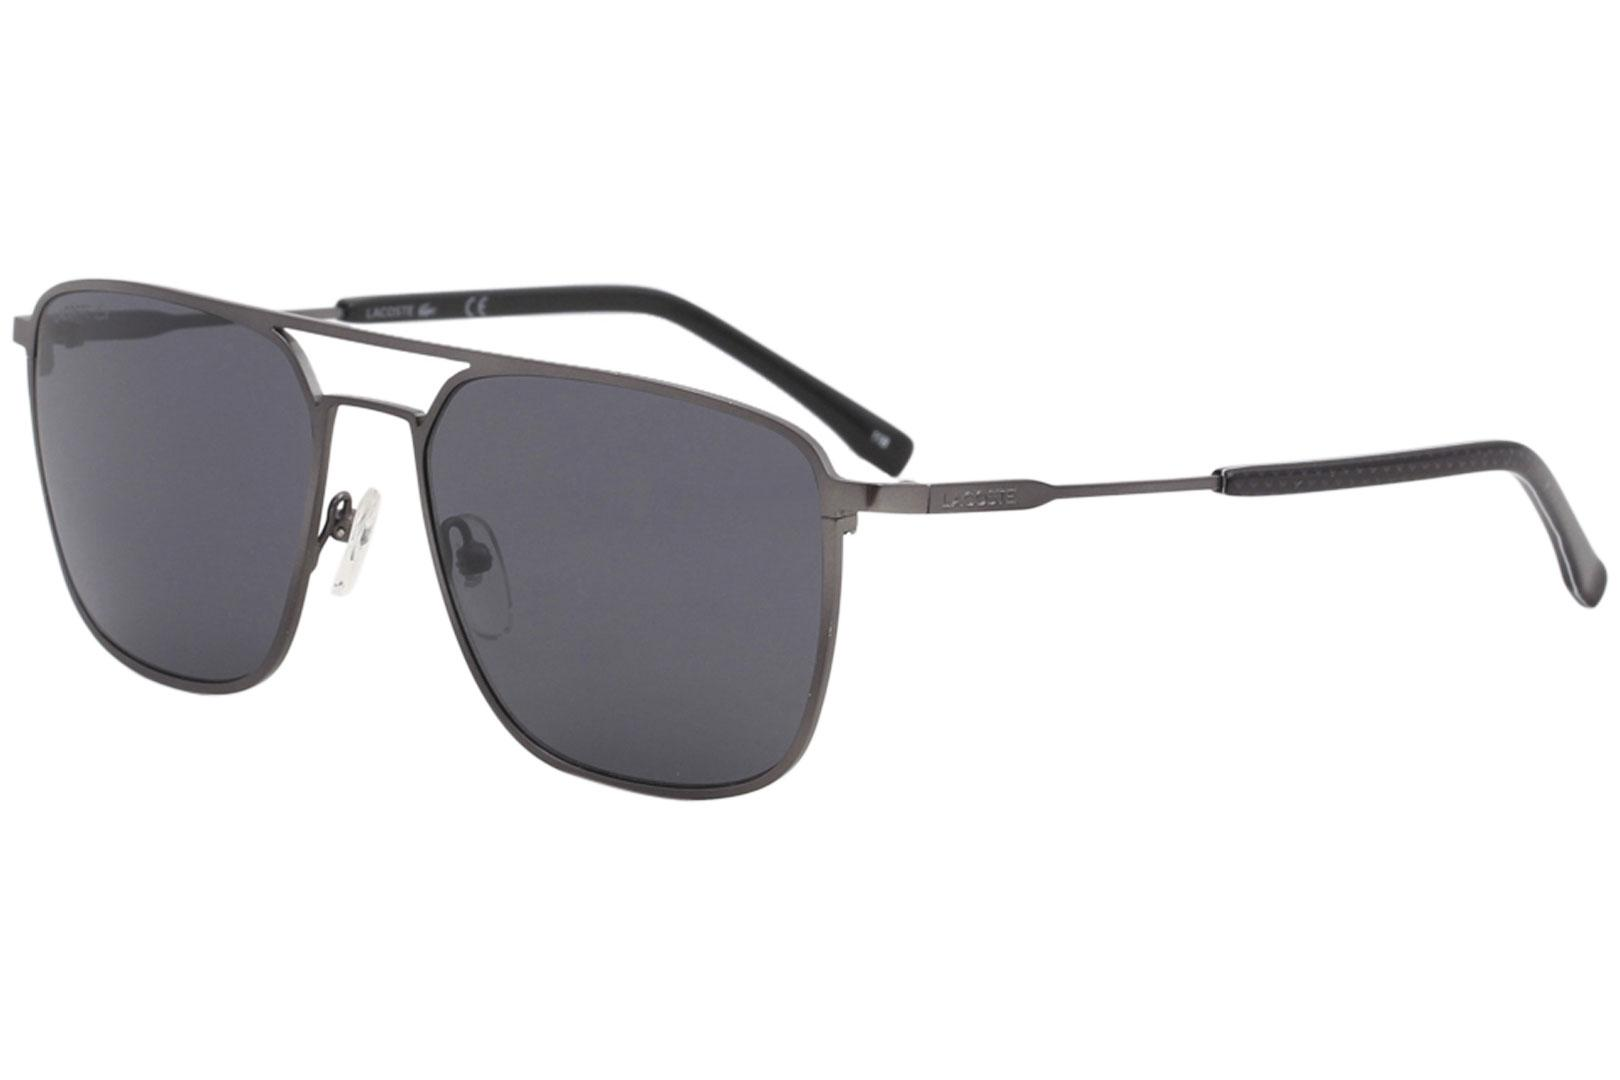 b939d05ffd Lacoste Men s L194S L 194 S Fashion Pilot Sunglasses